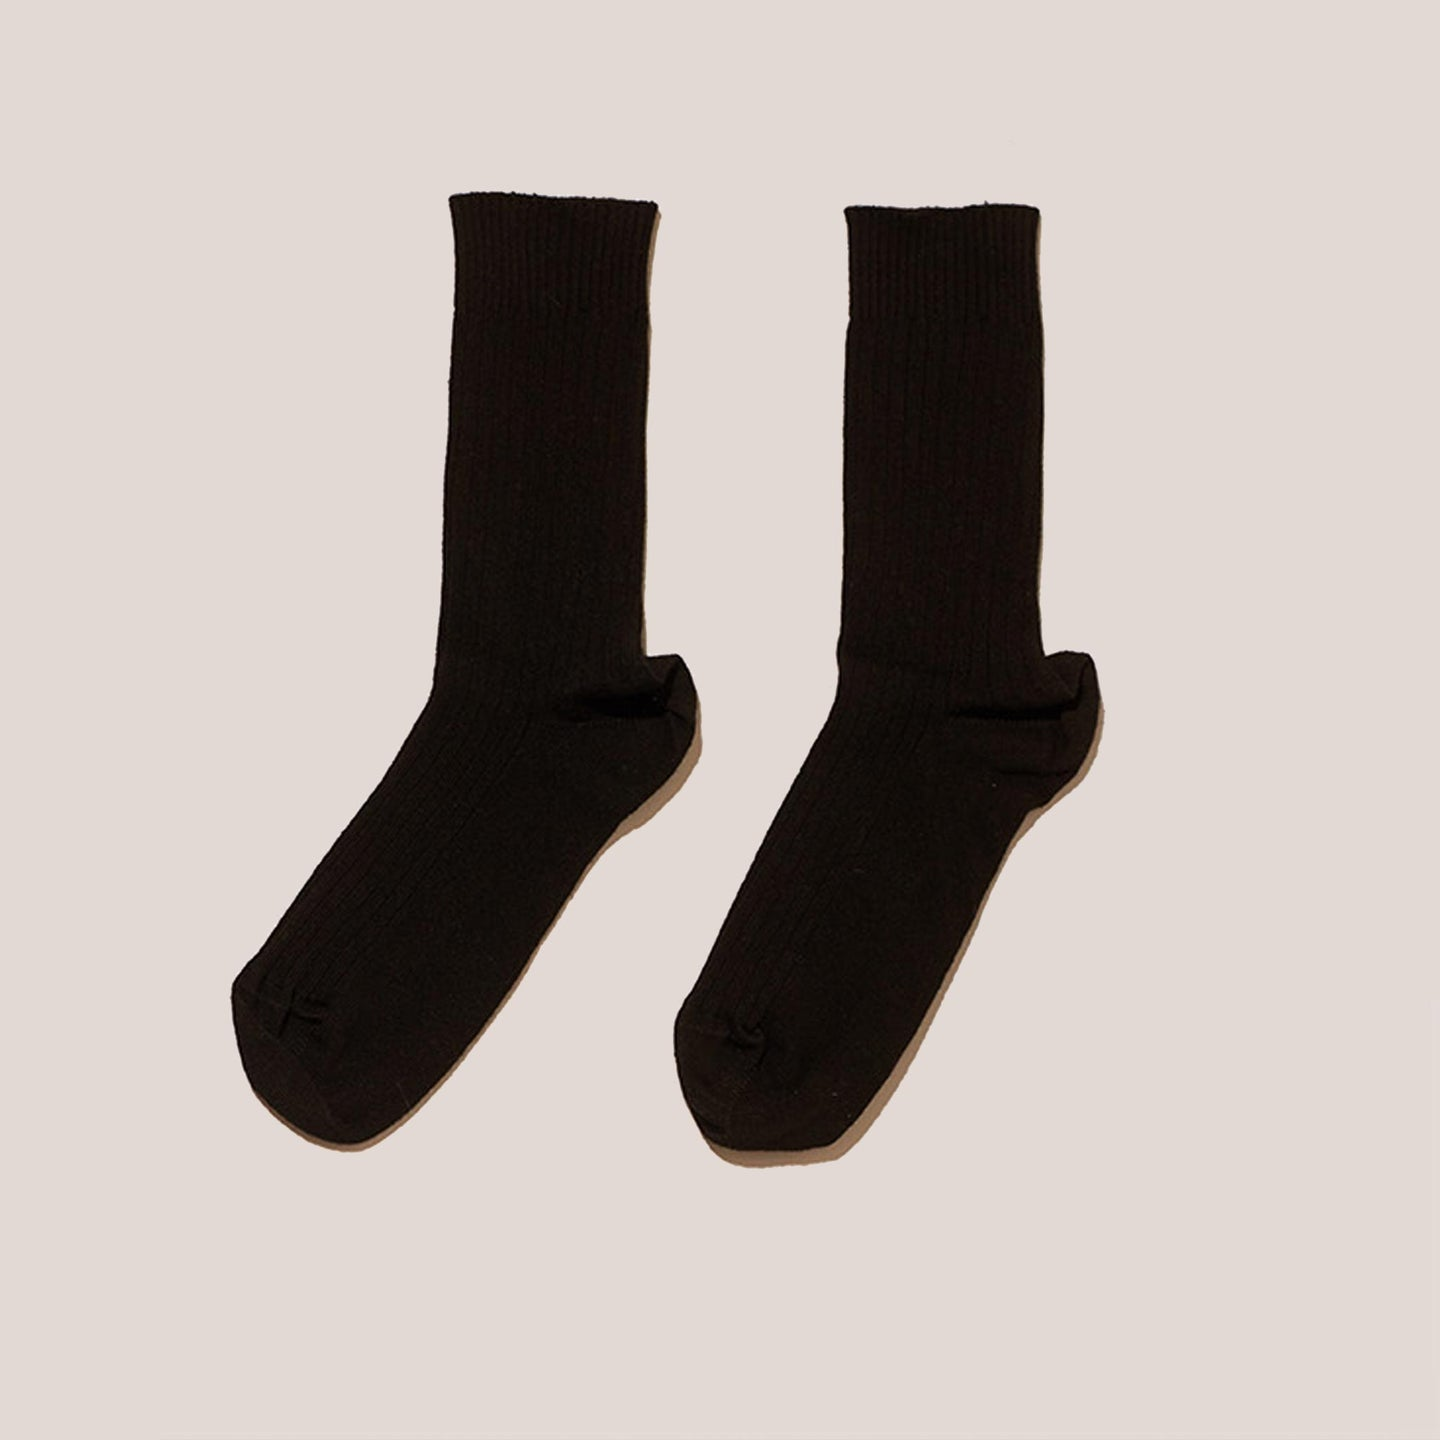 Baserange - Rib Ankle Socks - Black, available at LCD.